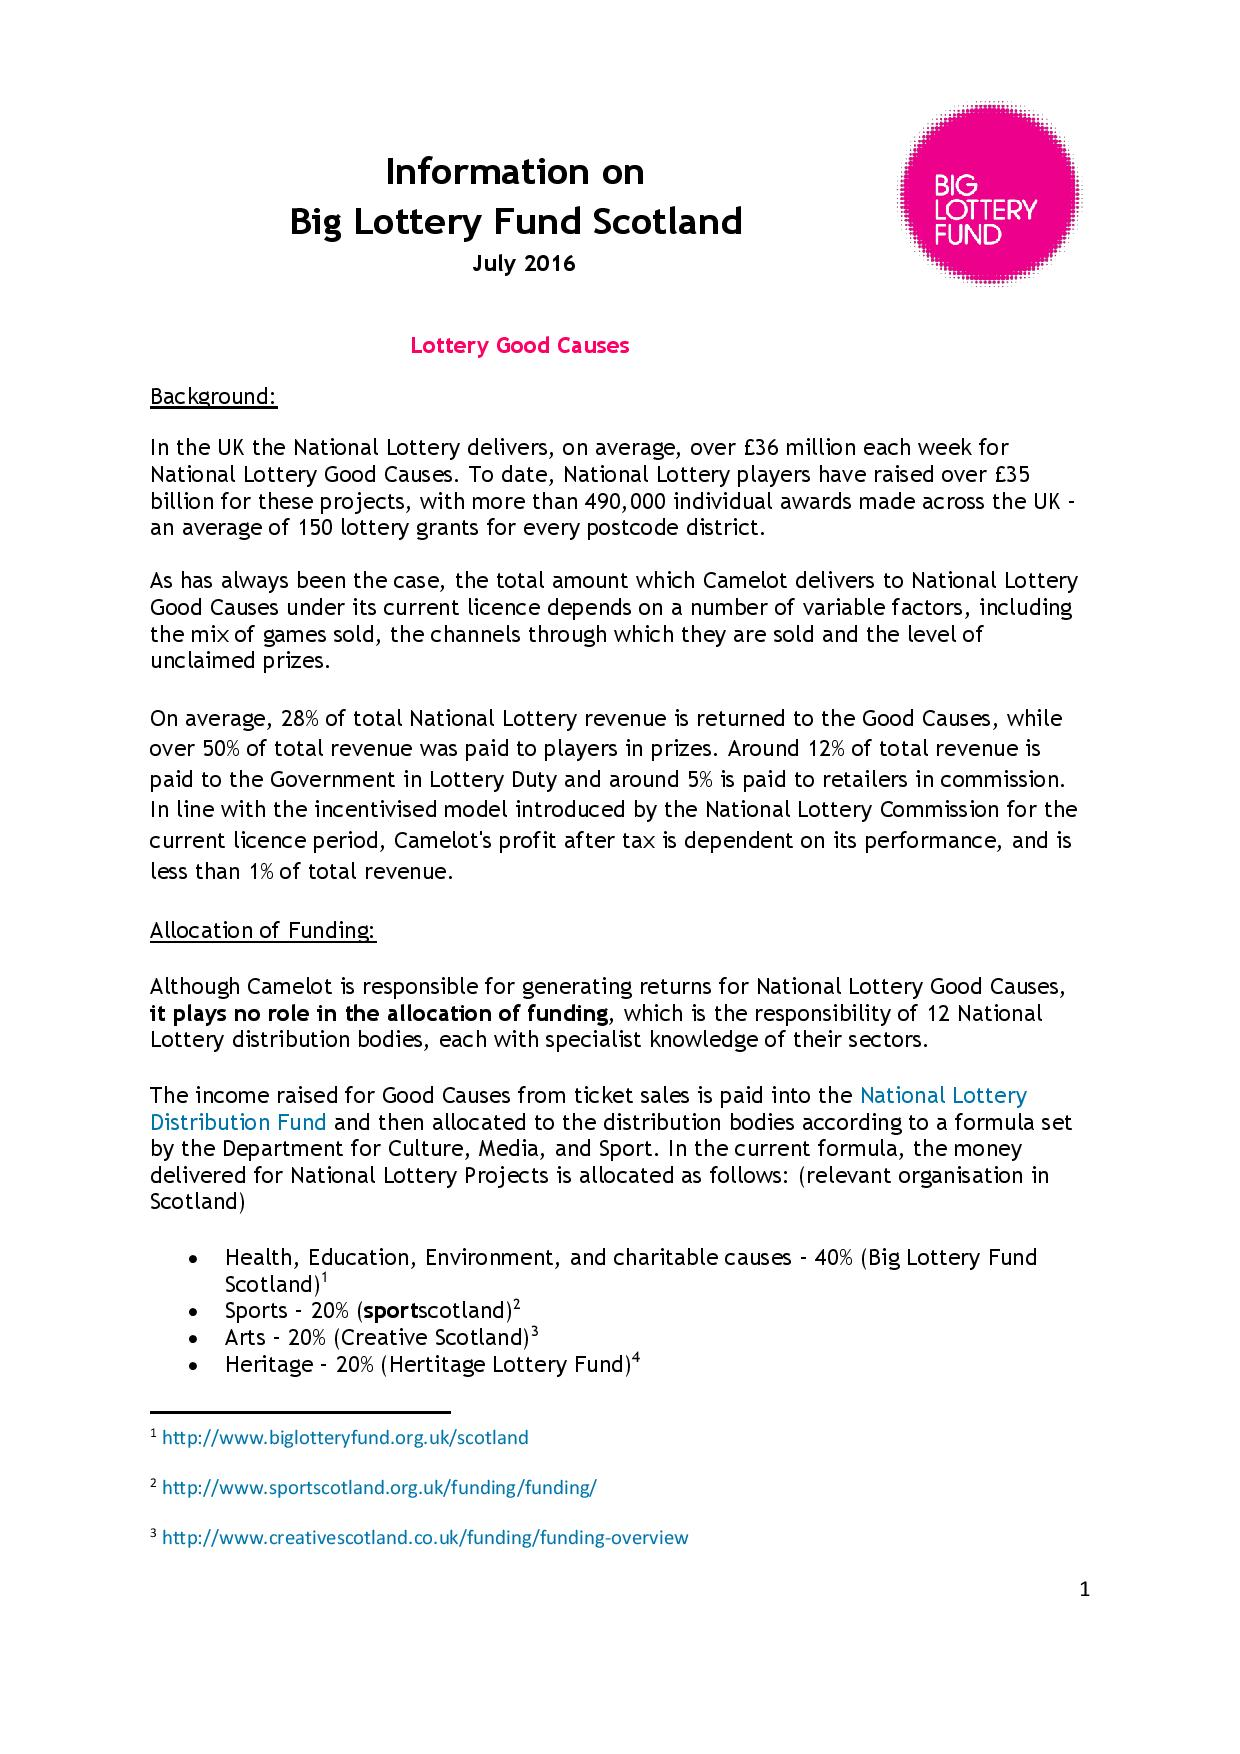 Big_Lottery_Fund_Scotland_Information_Briefing-page-001.jpg